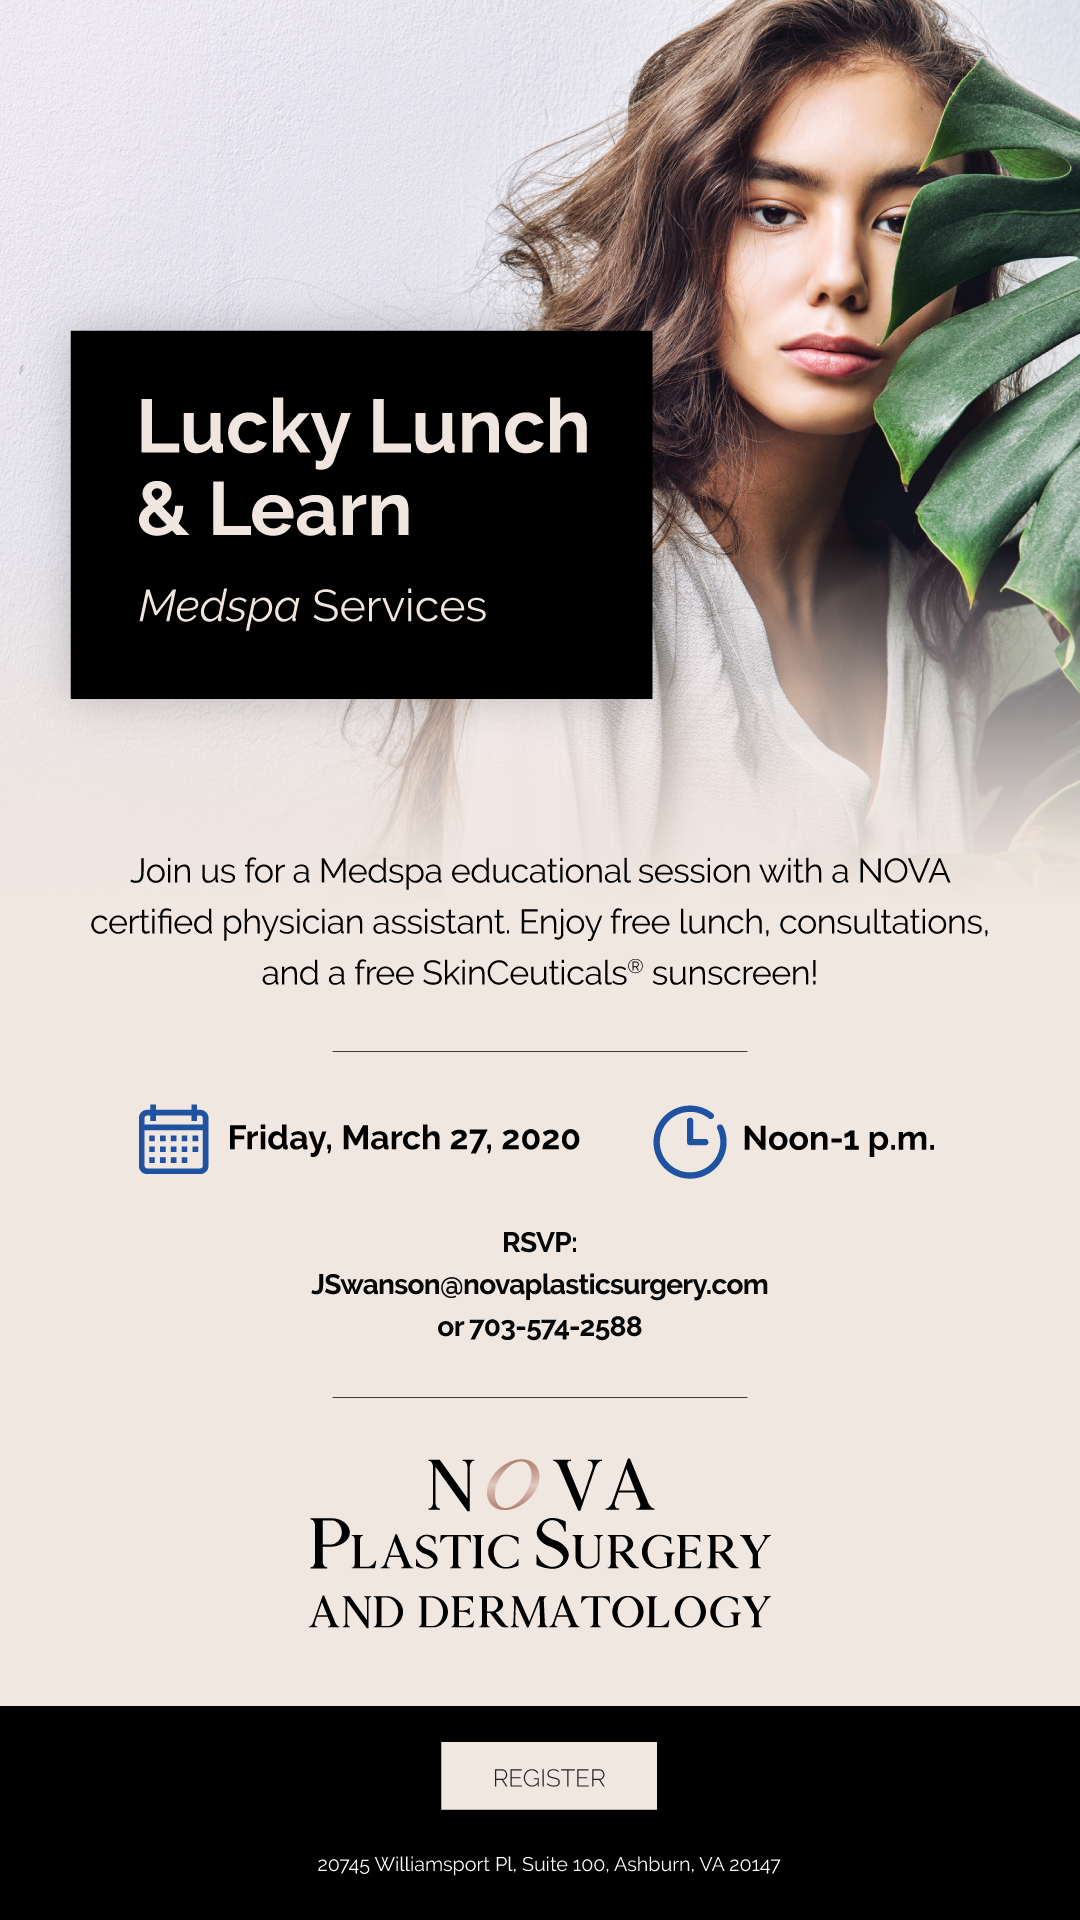 NOVA Lucky Lunch & Learn—Medspa Services